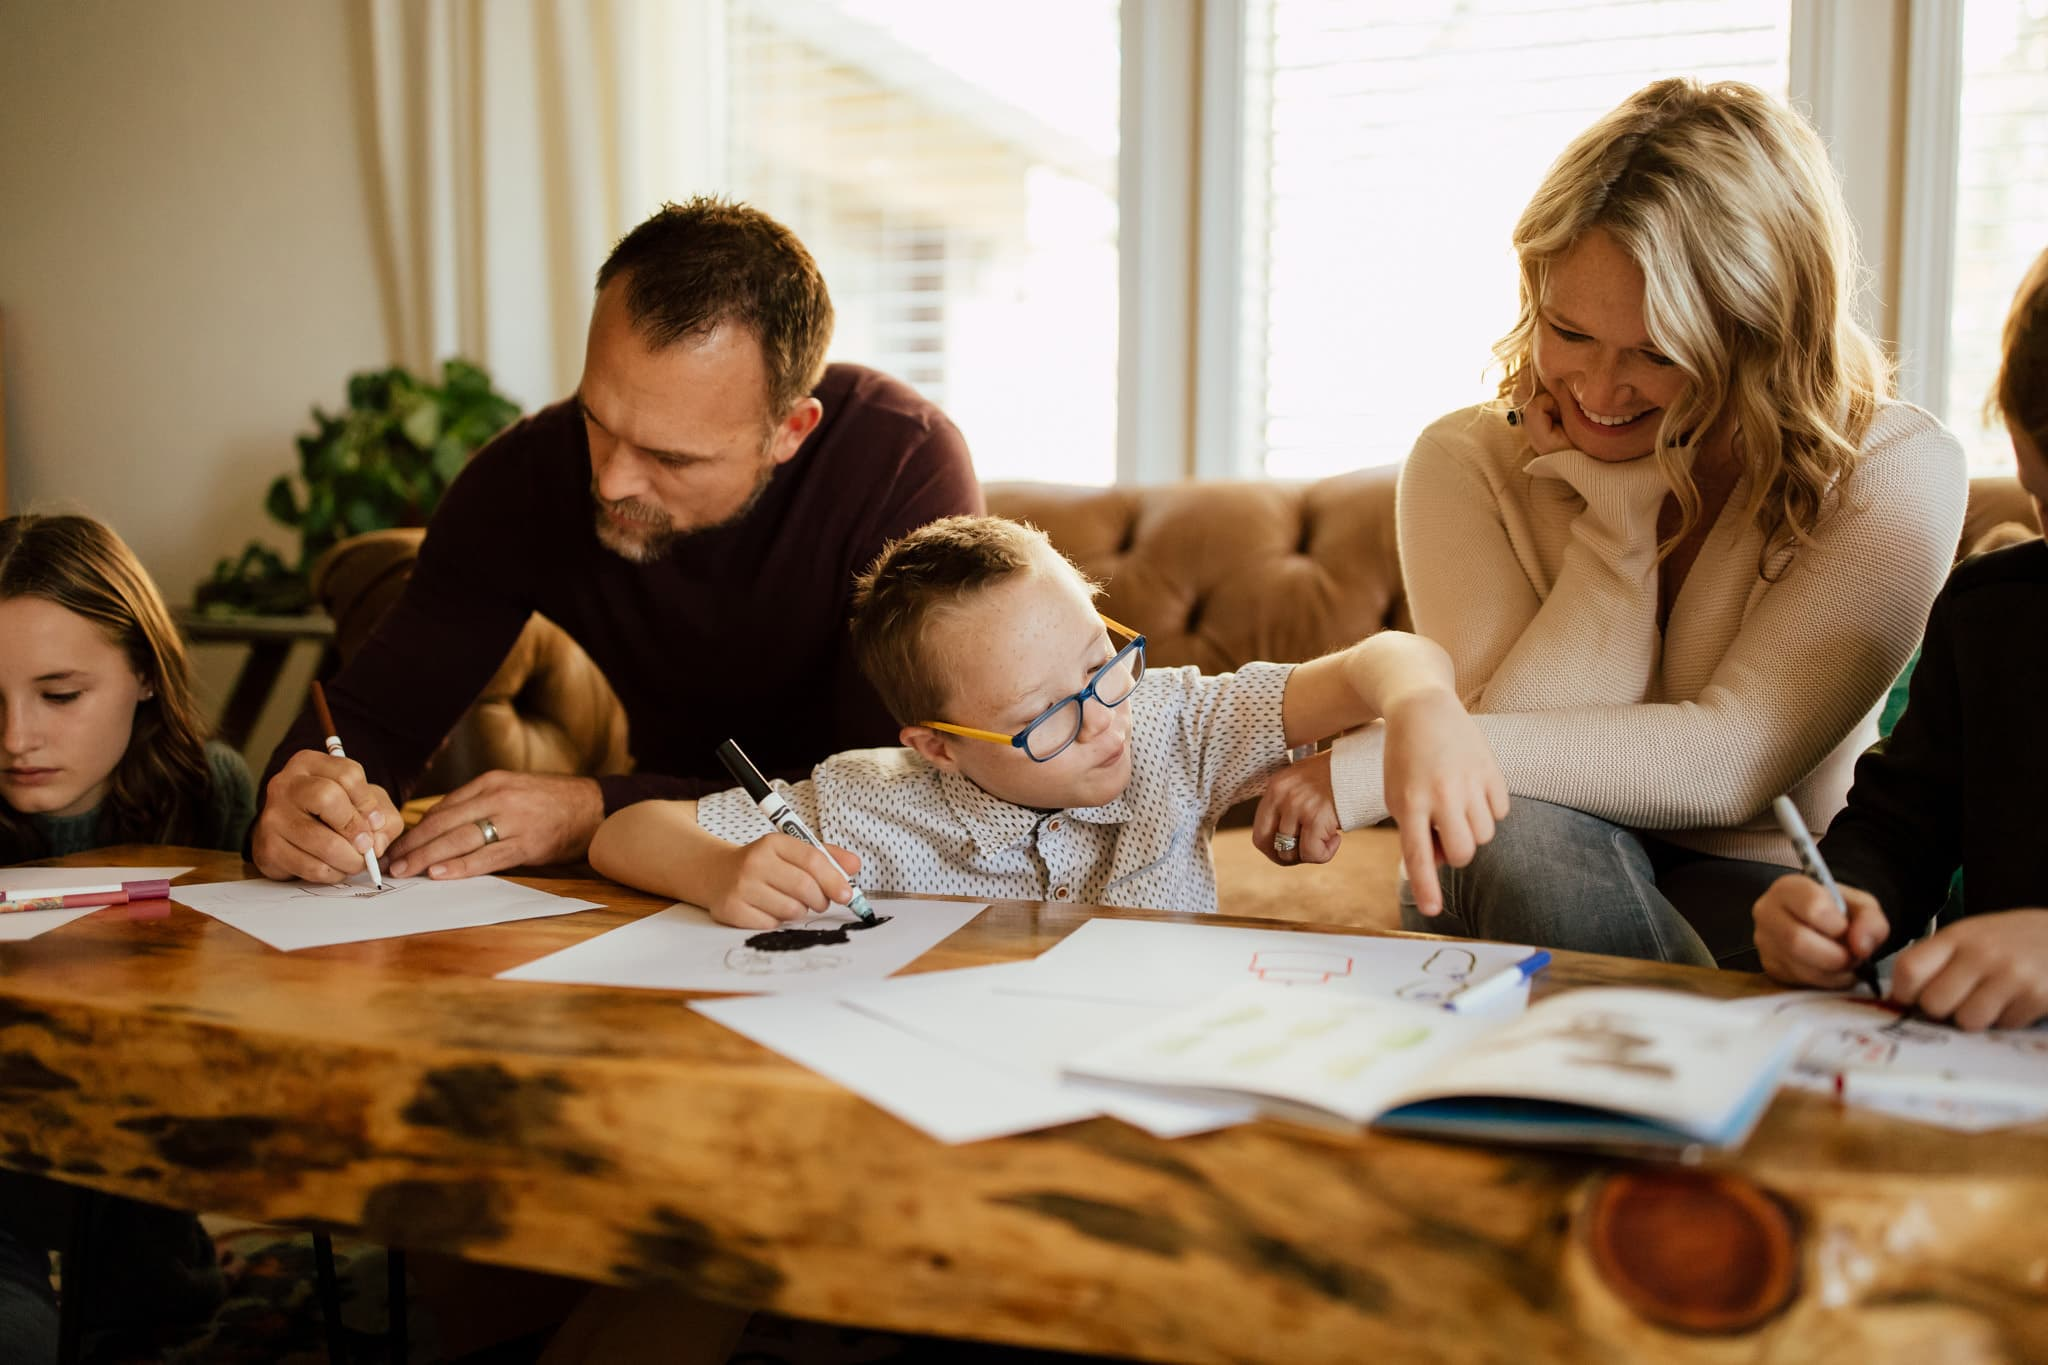 Little boy doing crafts at the table with family - what to do at home